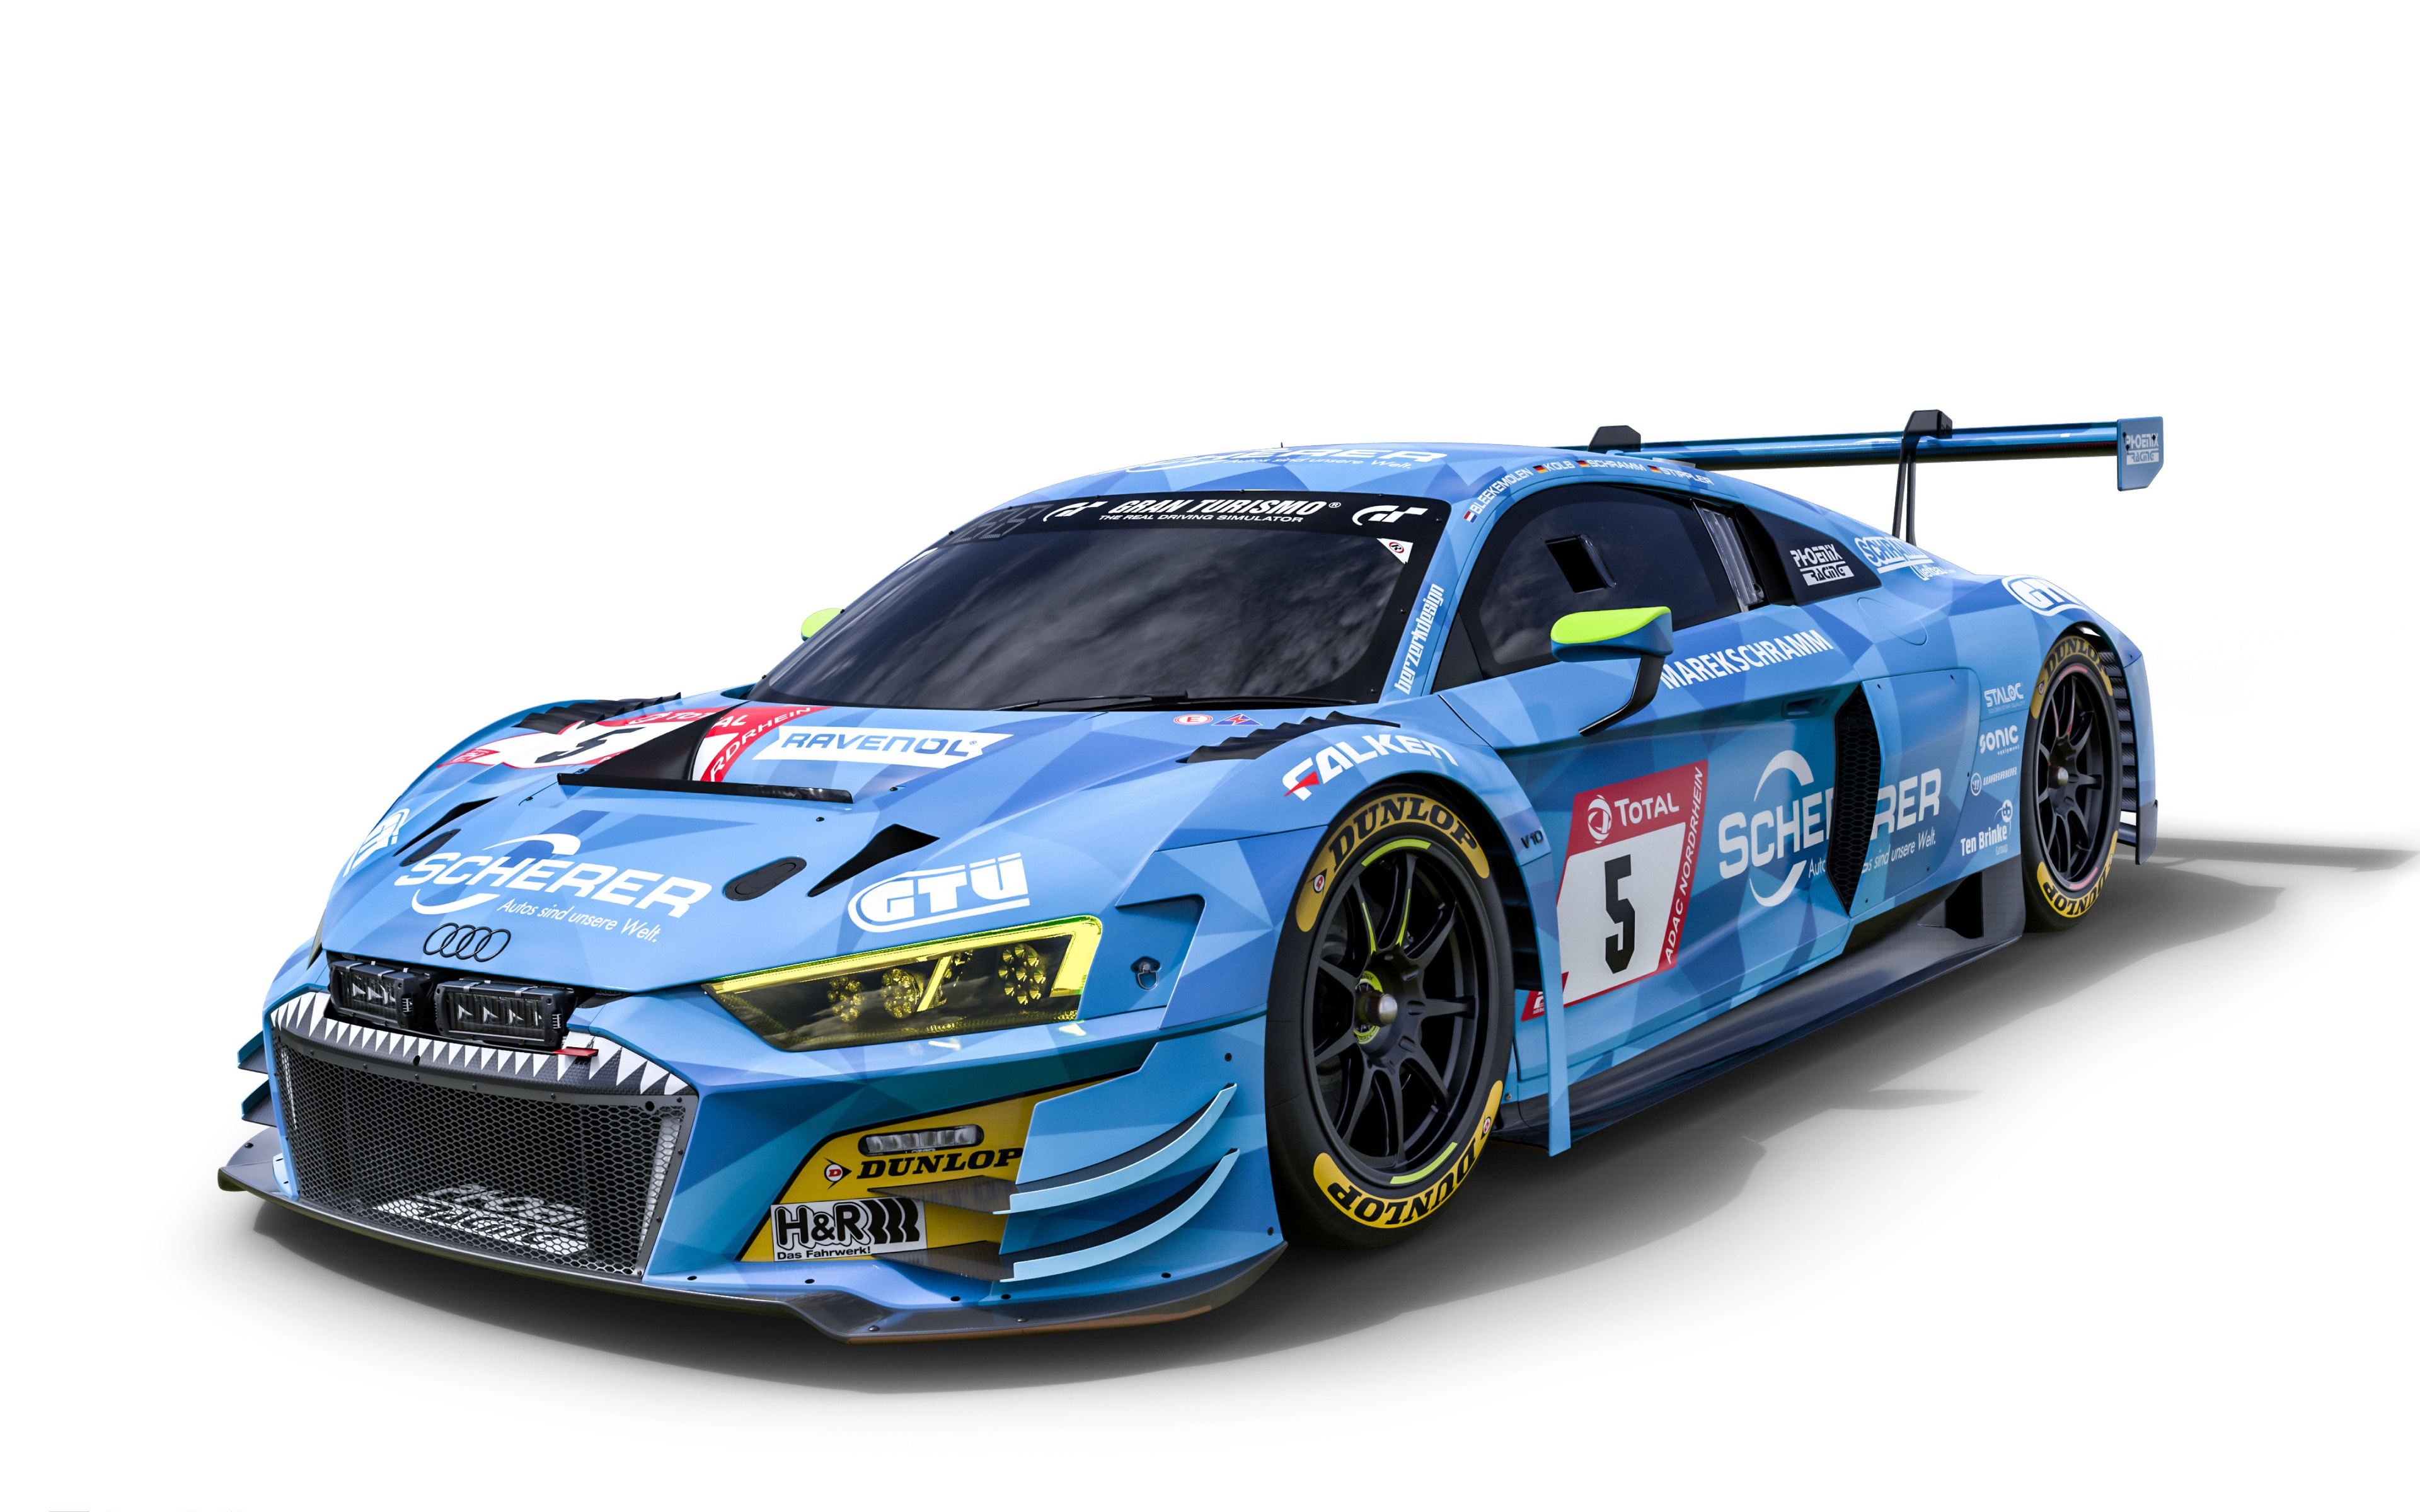 Car Vehicle Racing Race Cars Blue Cars Audi White Background Audi R8 Audi R8 Type 4s Wallpaper Resolution 3840x2400 Id 372872 Wallha Com